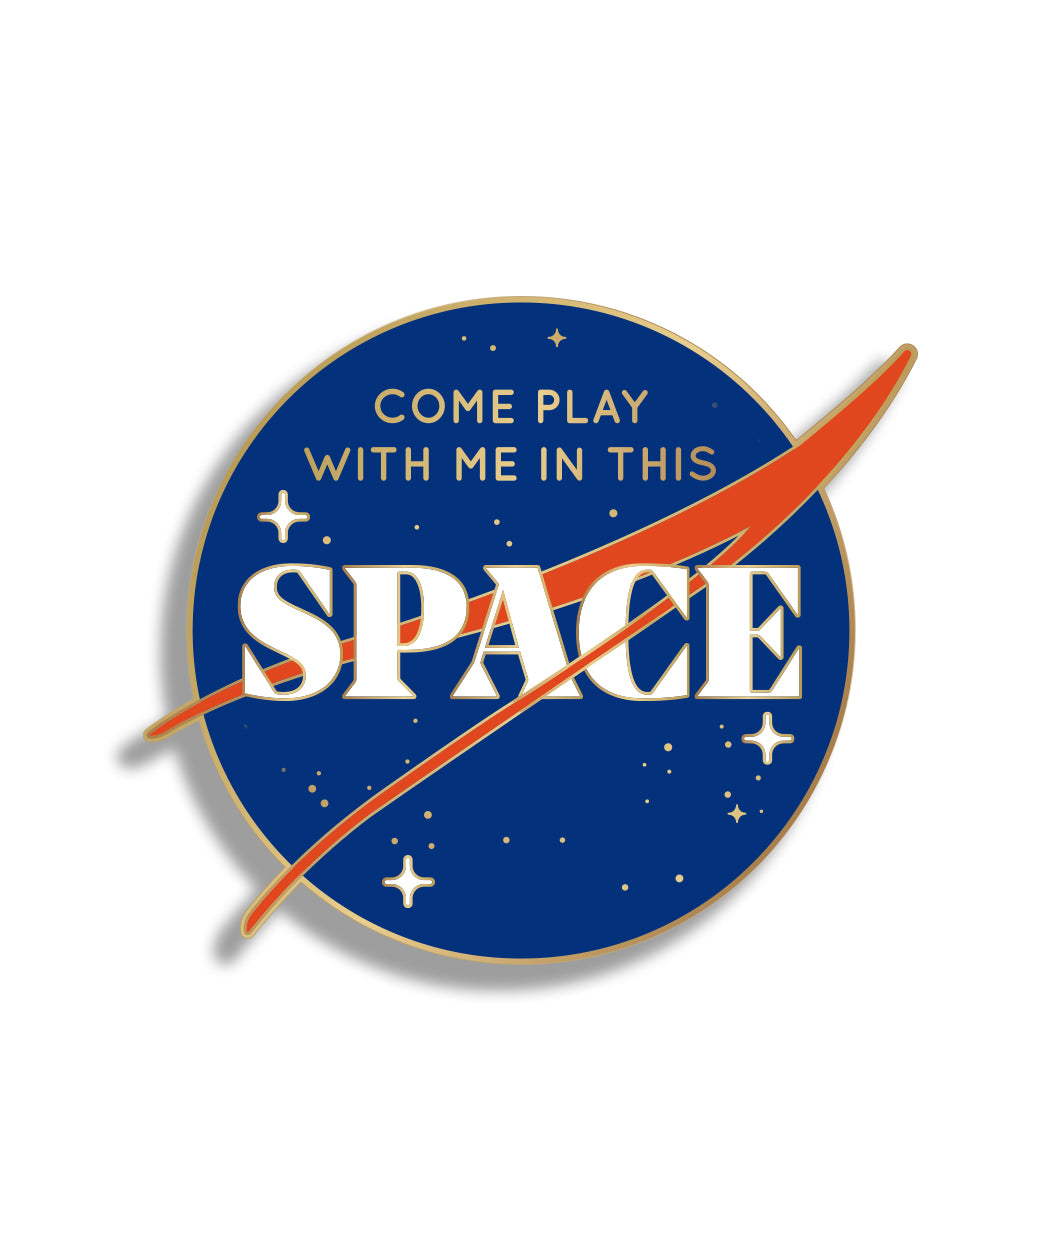 Pin Of The Month: Come Play With Me In This Space (March)